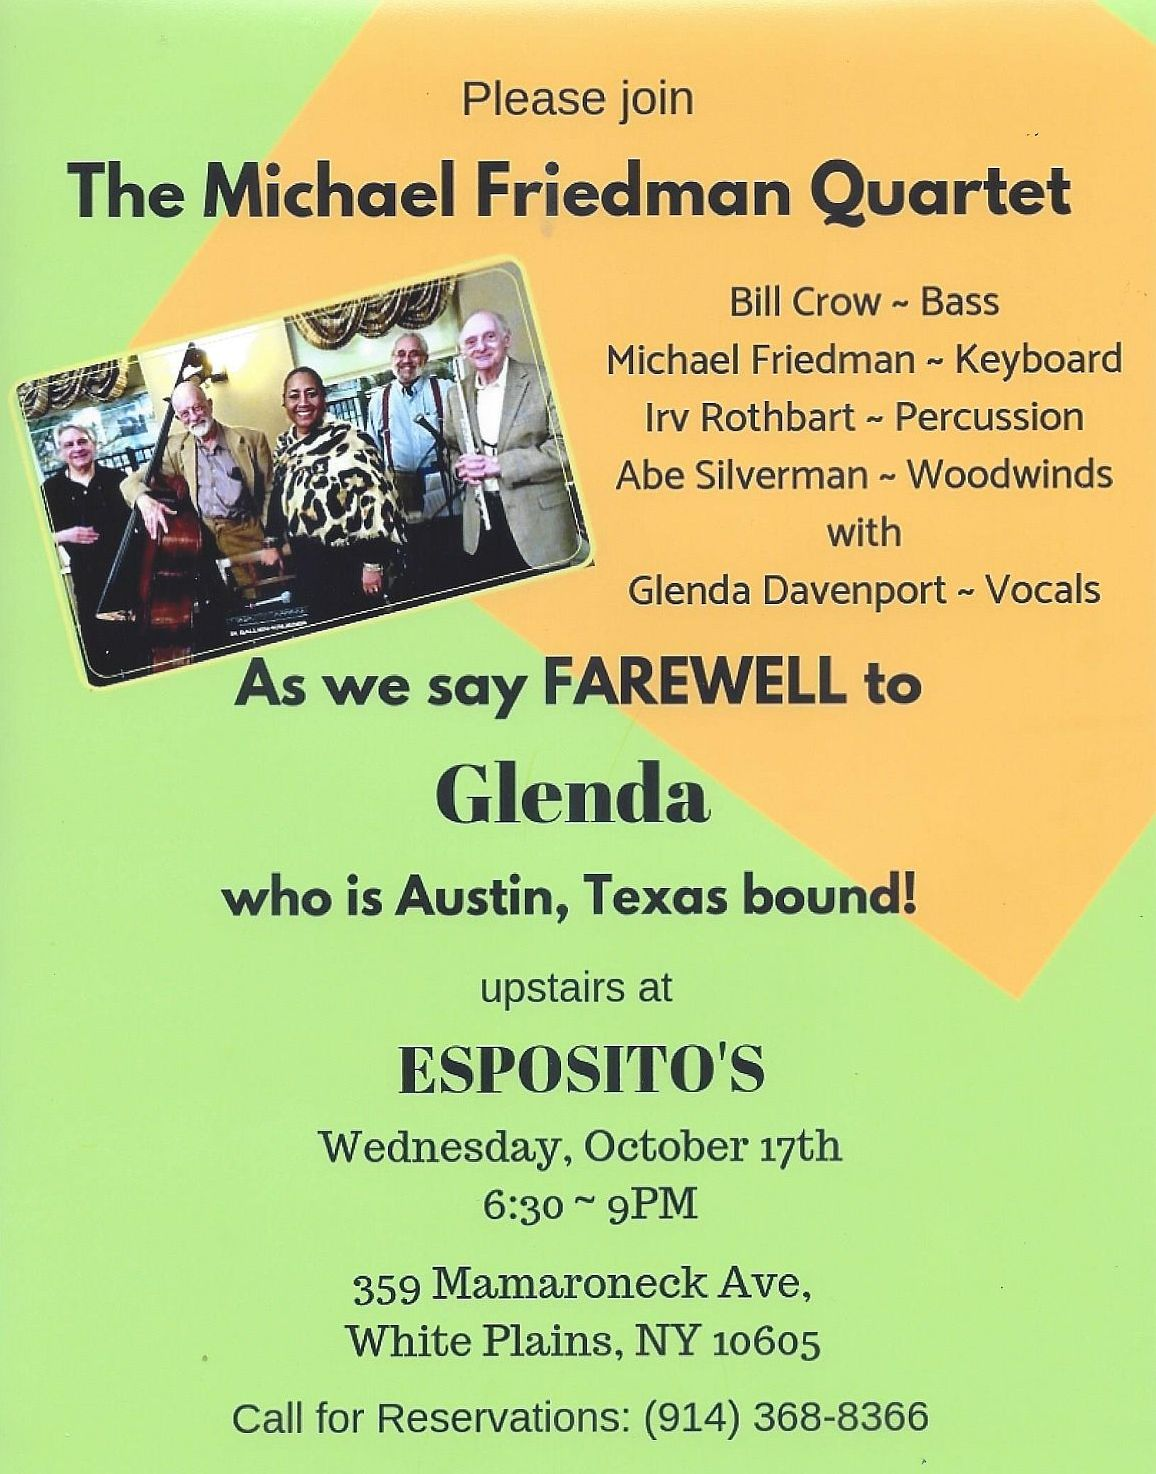 Please join The Michael Friedman Quartet Bill Crow - Bass Irv Rothbart - Percussion Abe Silverman - Woodwinds with Glenda Davenport - Vocals as we say FAREWELL to Glenda who is Austin, Texas bound!  upstairs at Esposito's  Wednesday, October 17th